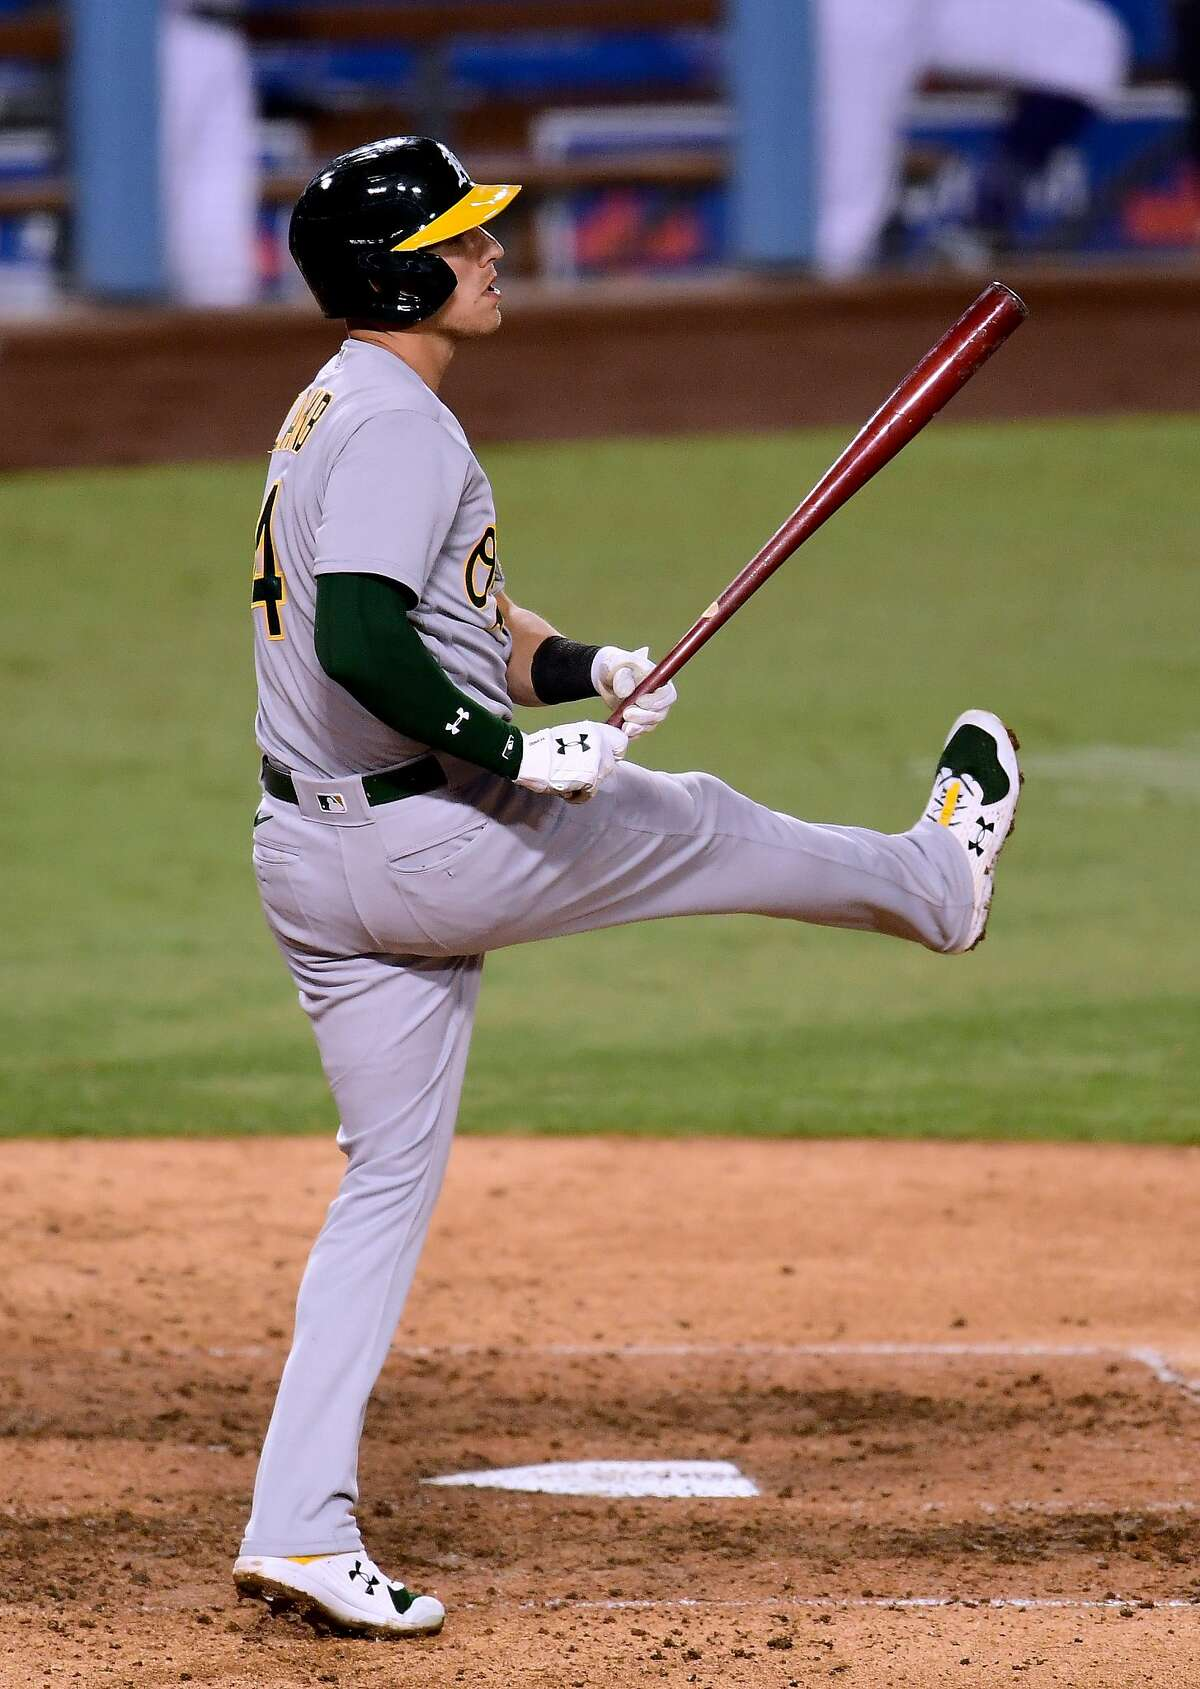 A's third baseman Jake Lamb reacts after striking out in the seventh inning. It was one of Oakland's 16 strikeouts.